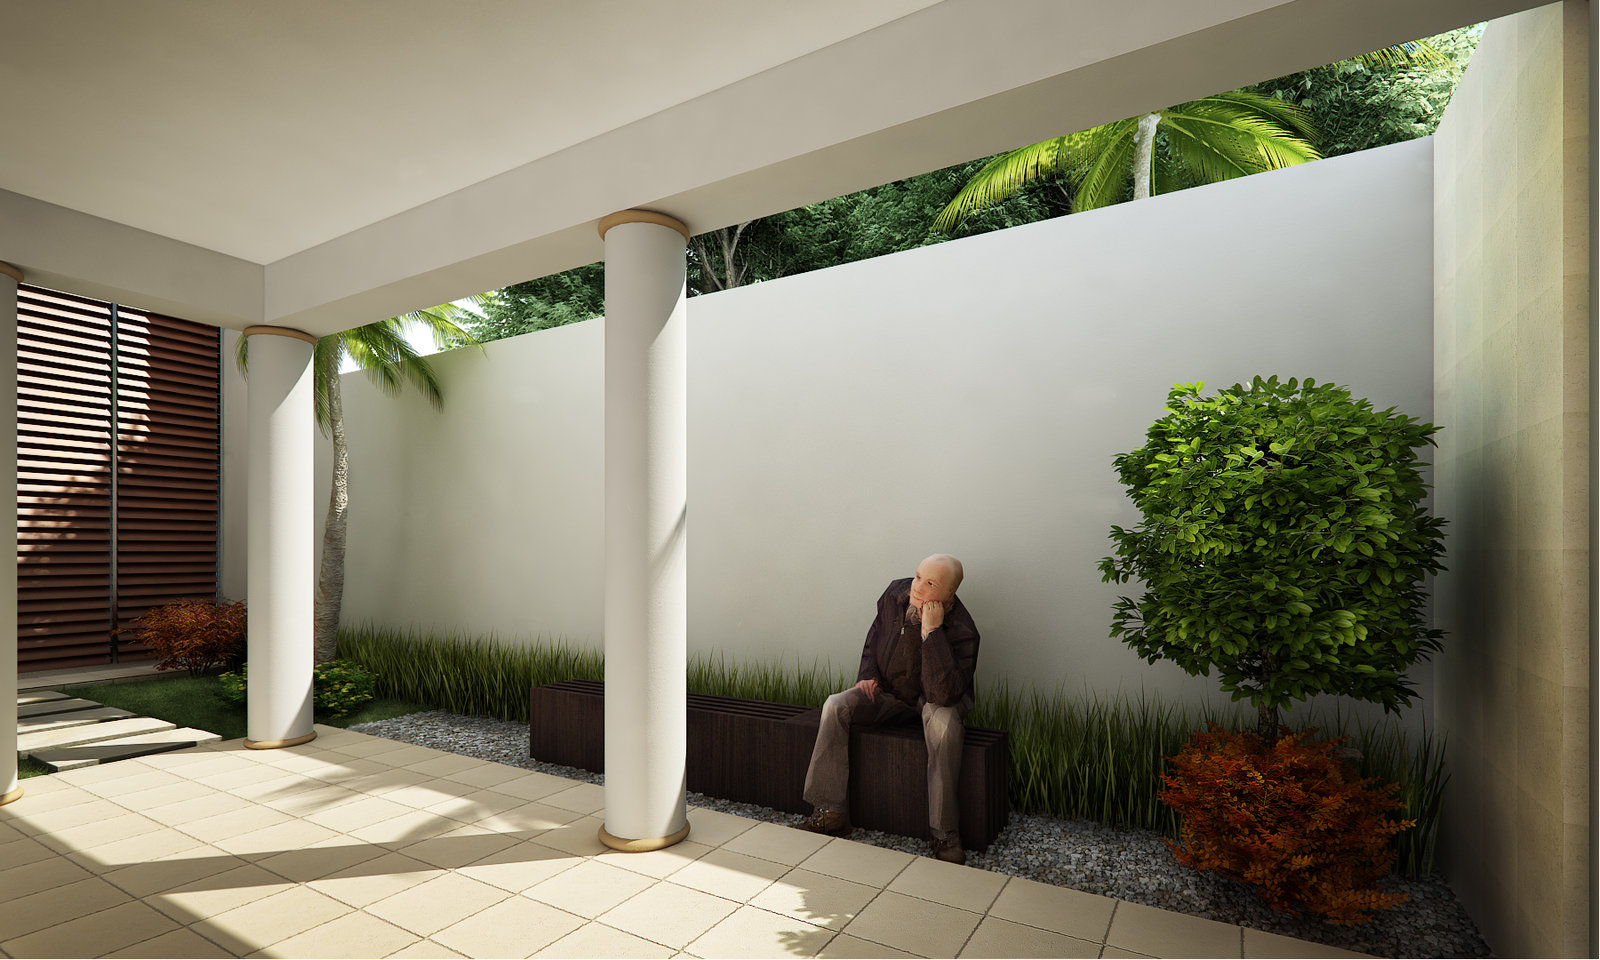 vargas tejeda architecture - Courtyard Ideas Design